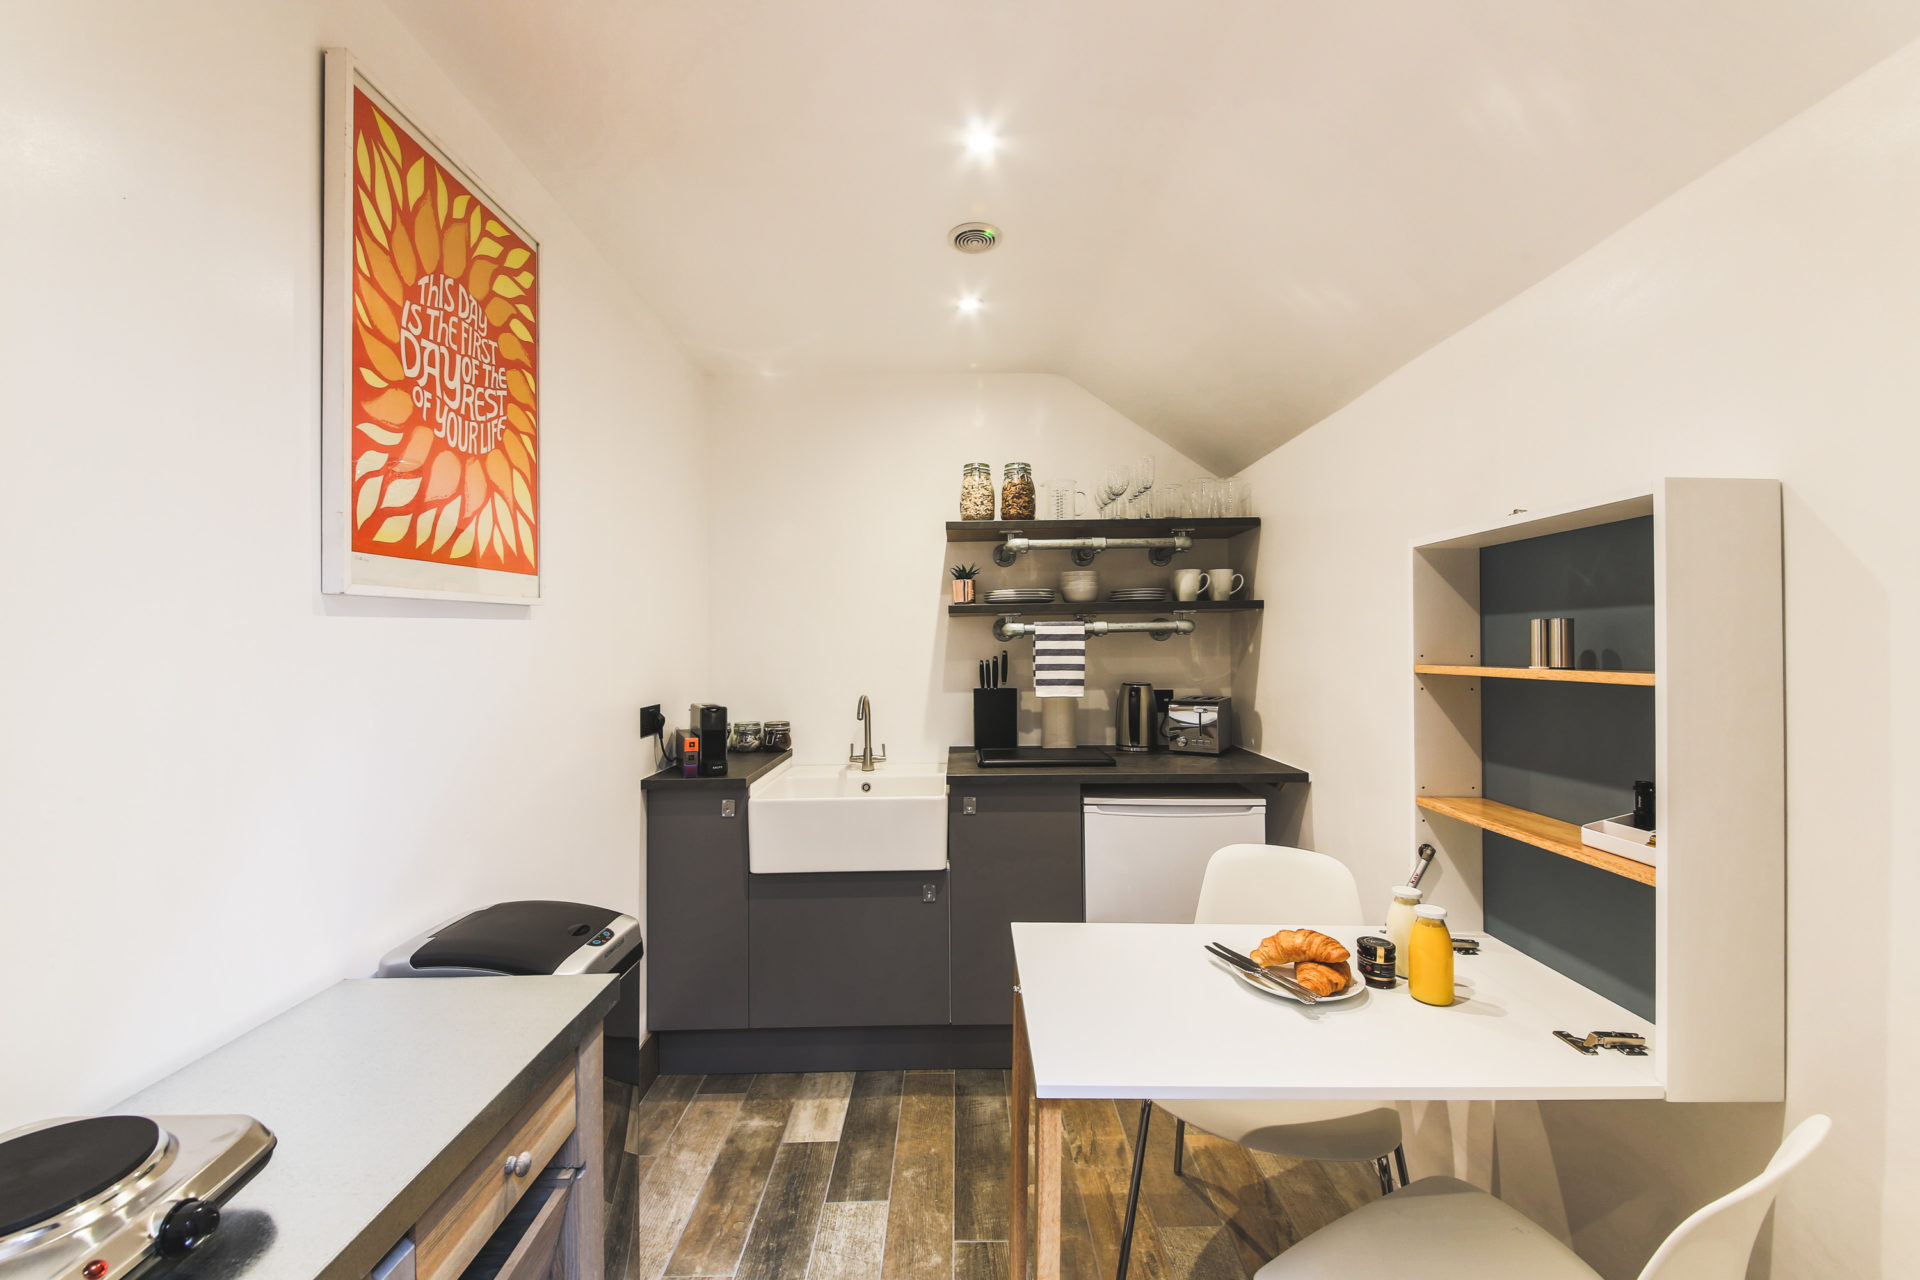 Small but perfectly formed kitchen